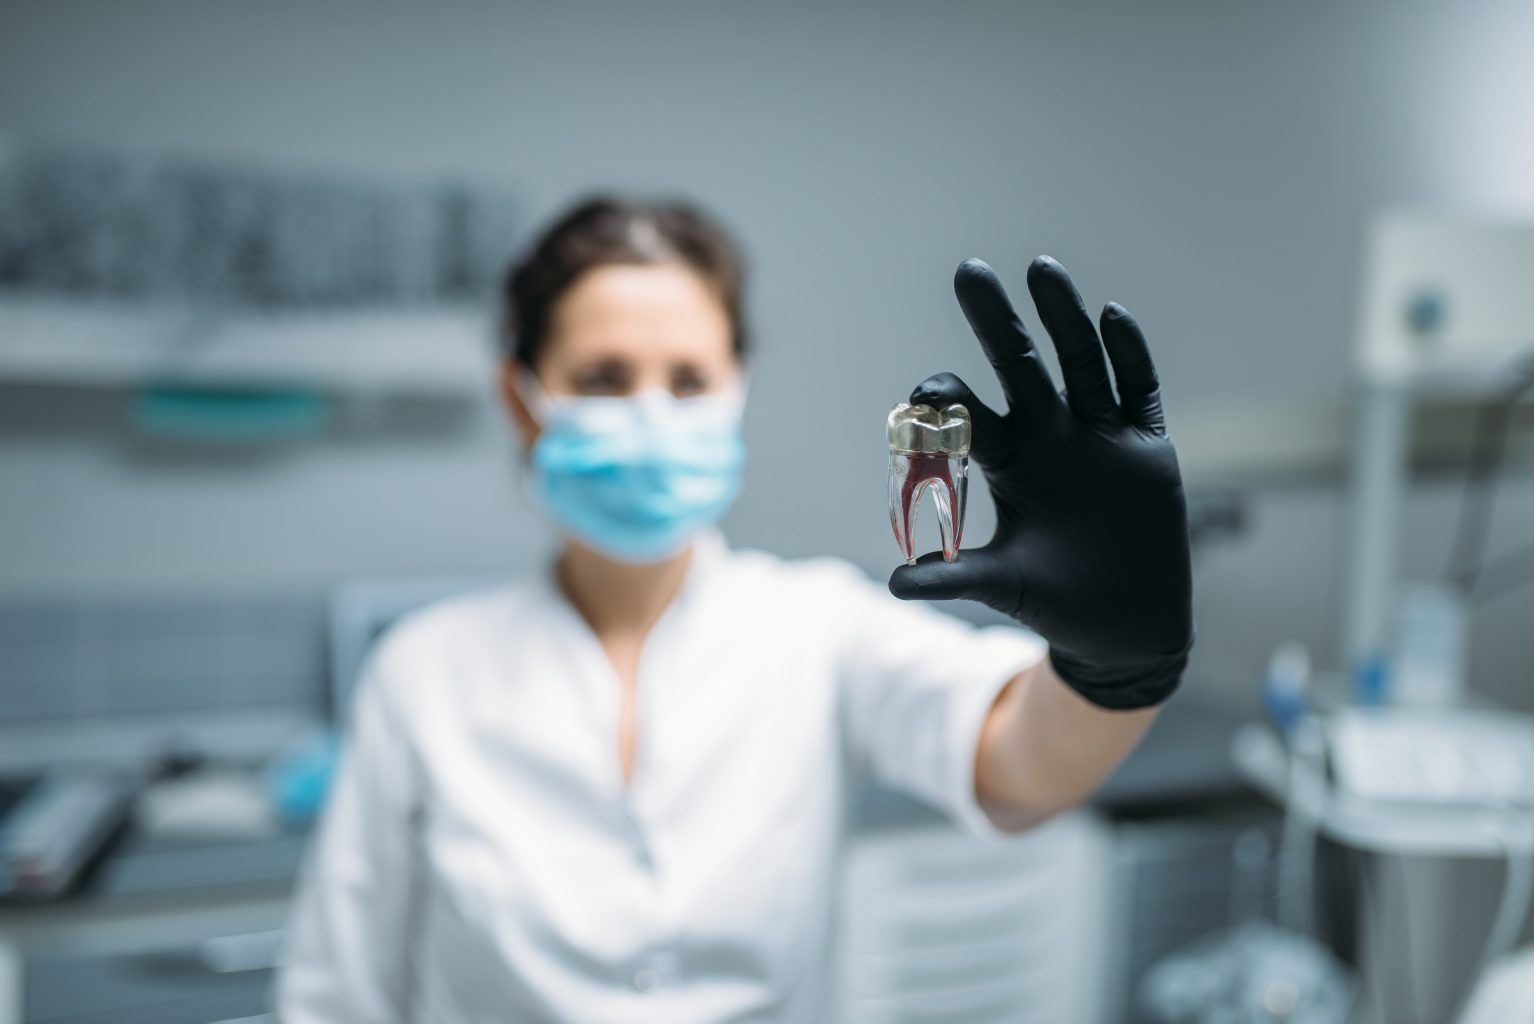 dentist shows tooth pin and model dental clinic